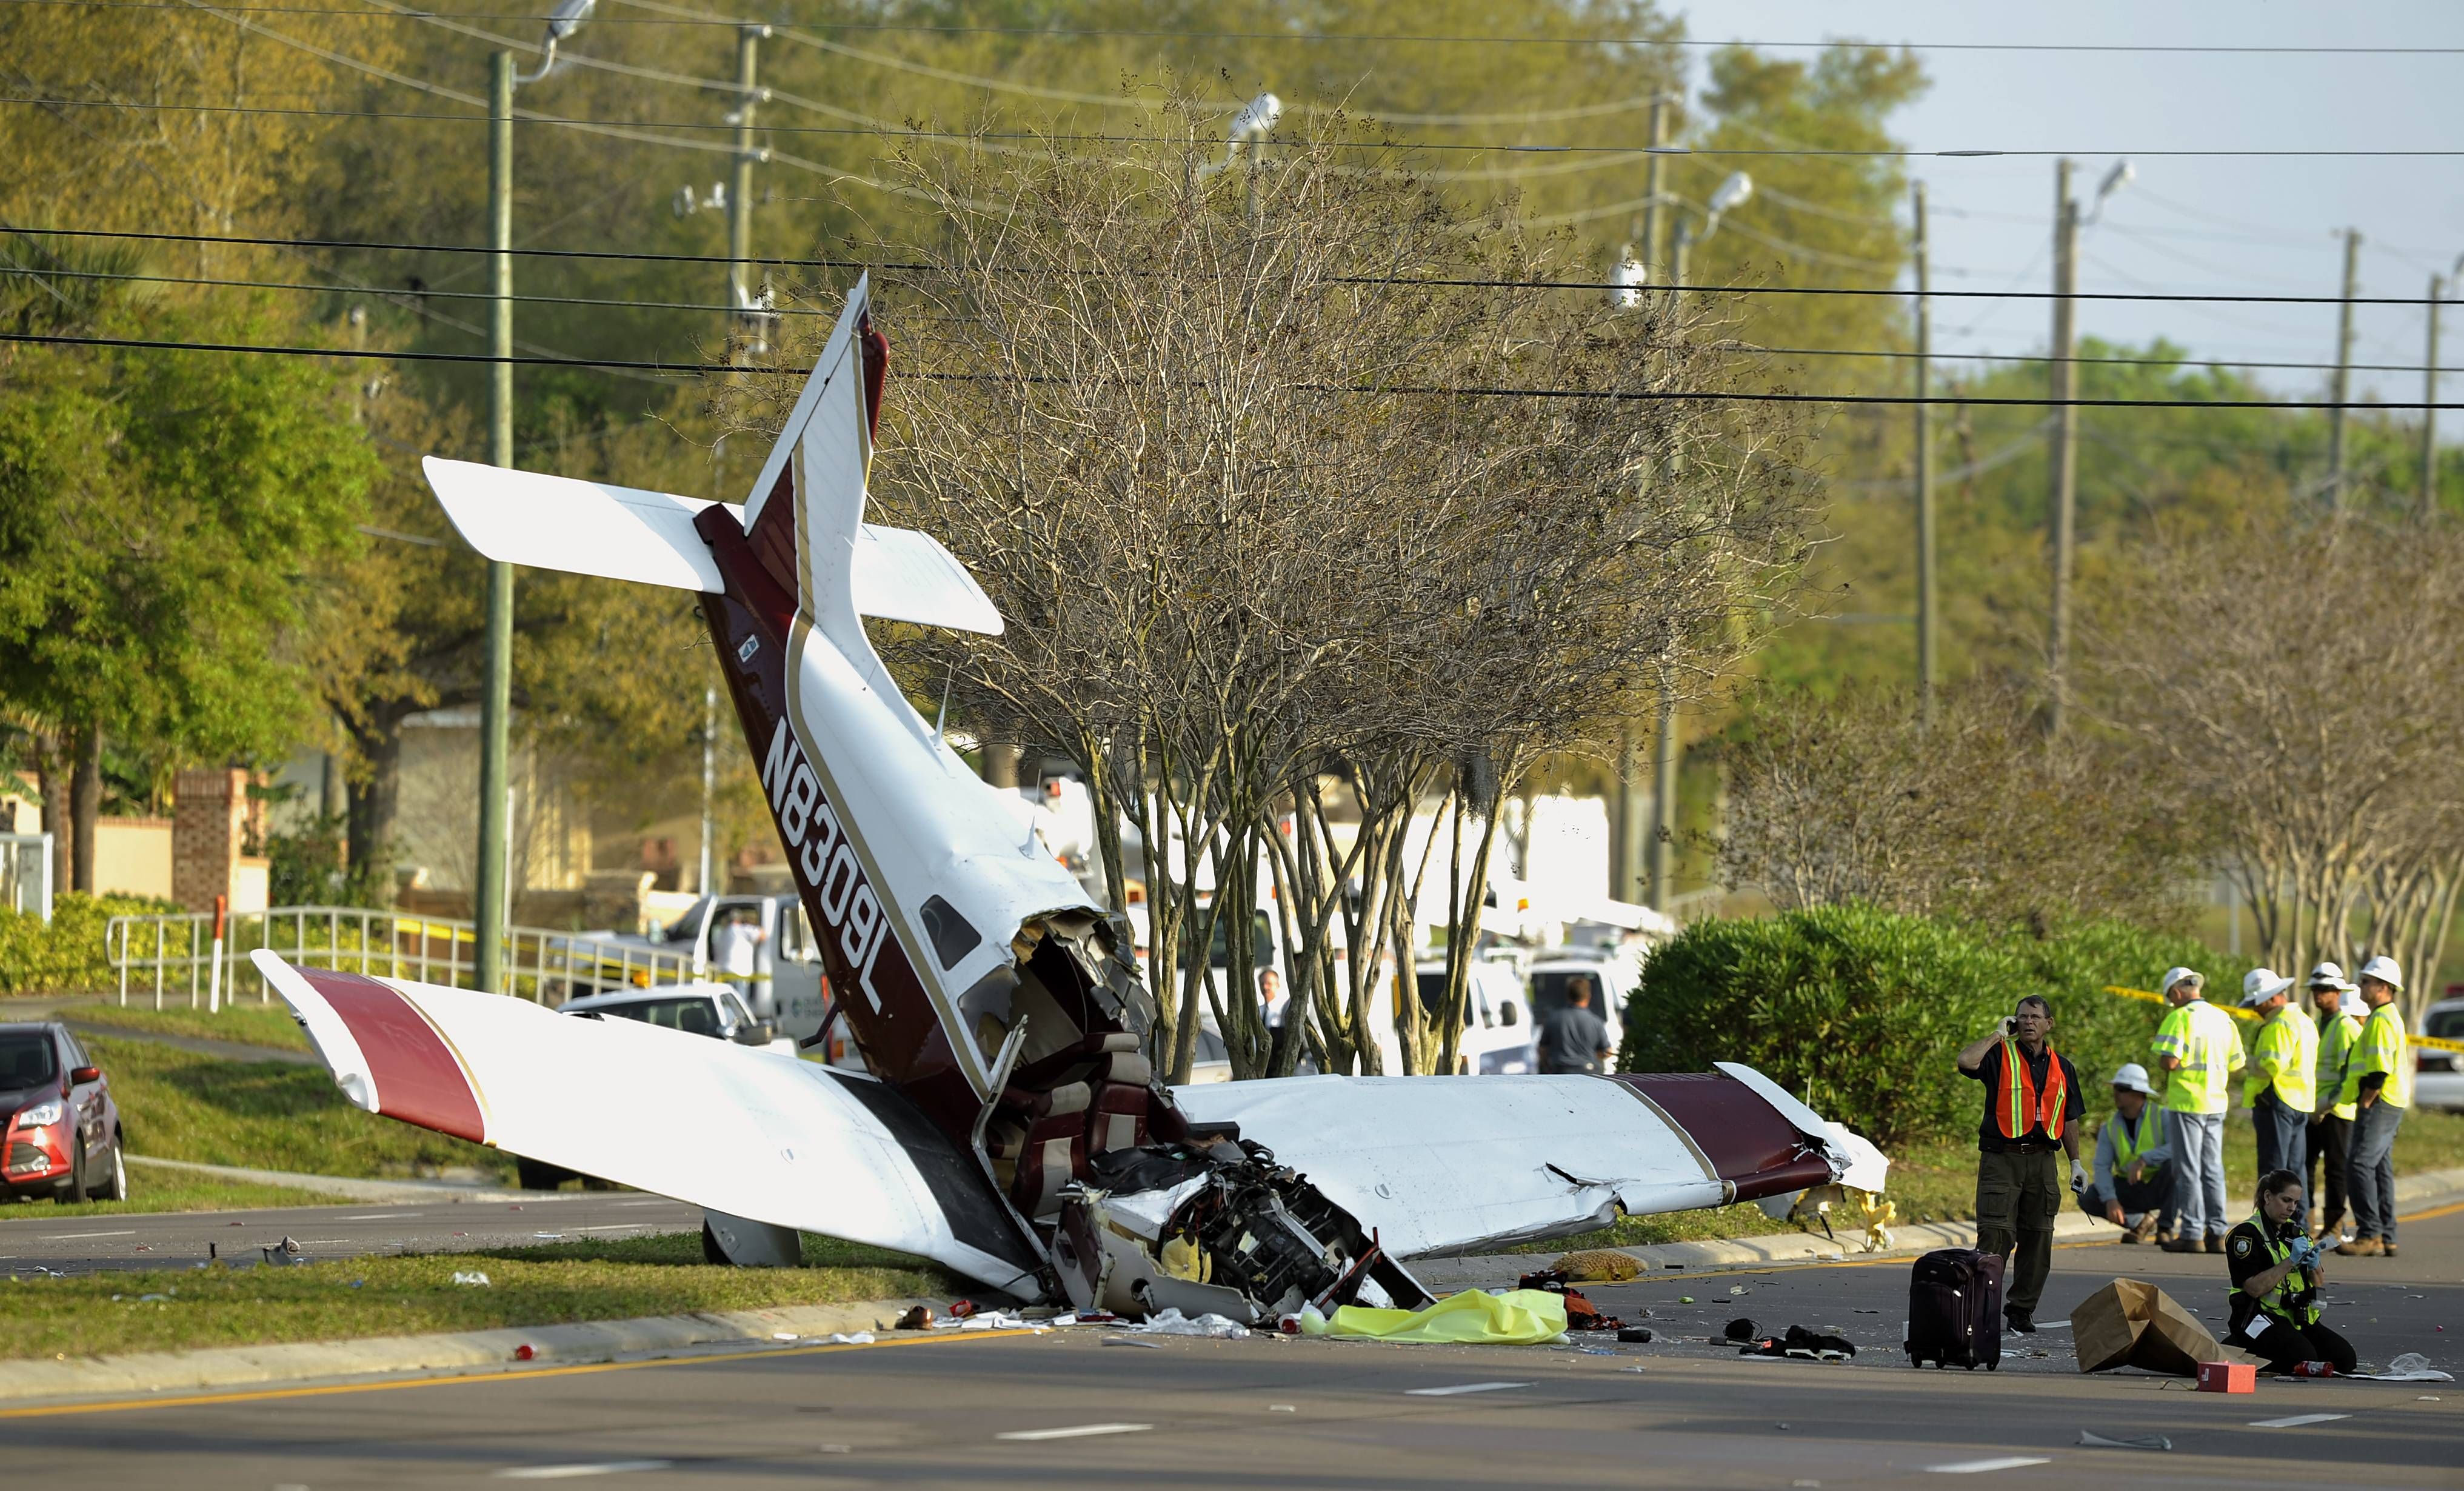 Investigators look at the wreckage of a small passenger plane which crashed early Saturday in Clearwater, Fla. Jeffrey Bronken, 53, of Round Lake was killed in the crash and Katherine Bronken, 15, and Keyana Linbo,15, were injured injured. According to the Clearwater Police Department, the aircraft came to a rest on the median of a six-lane street.